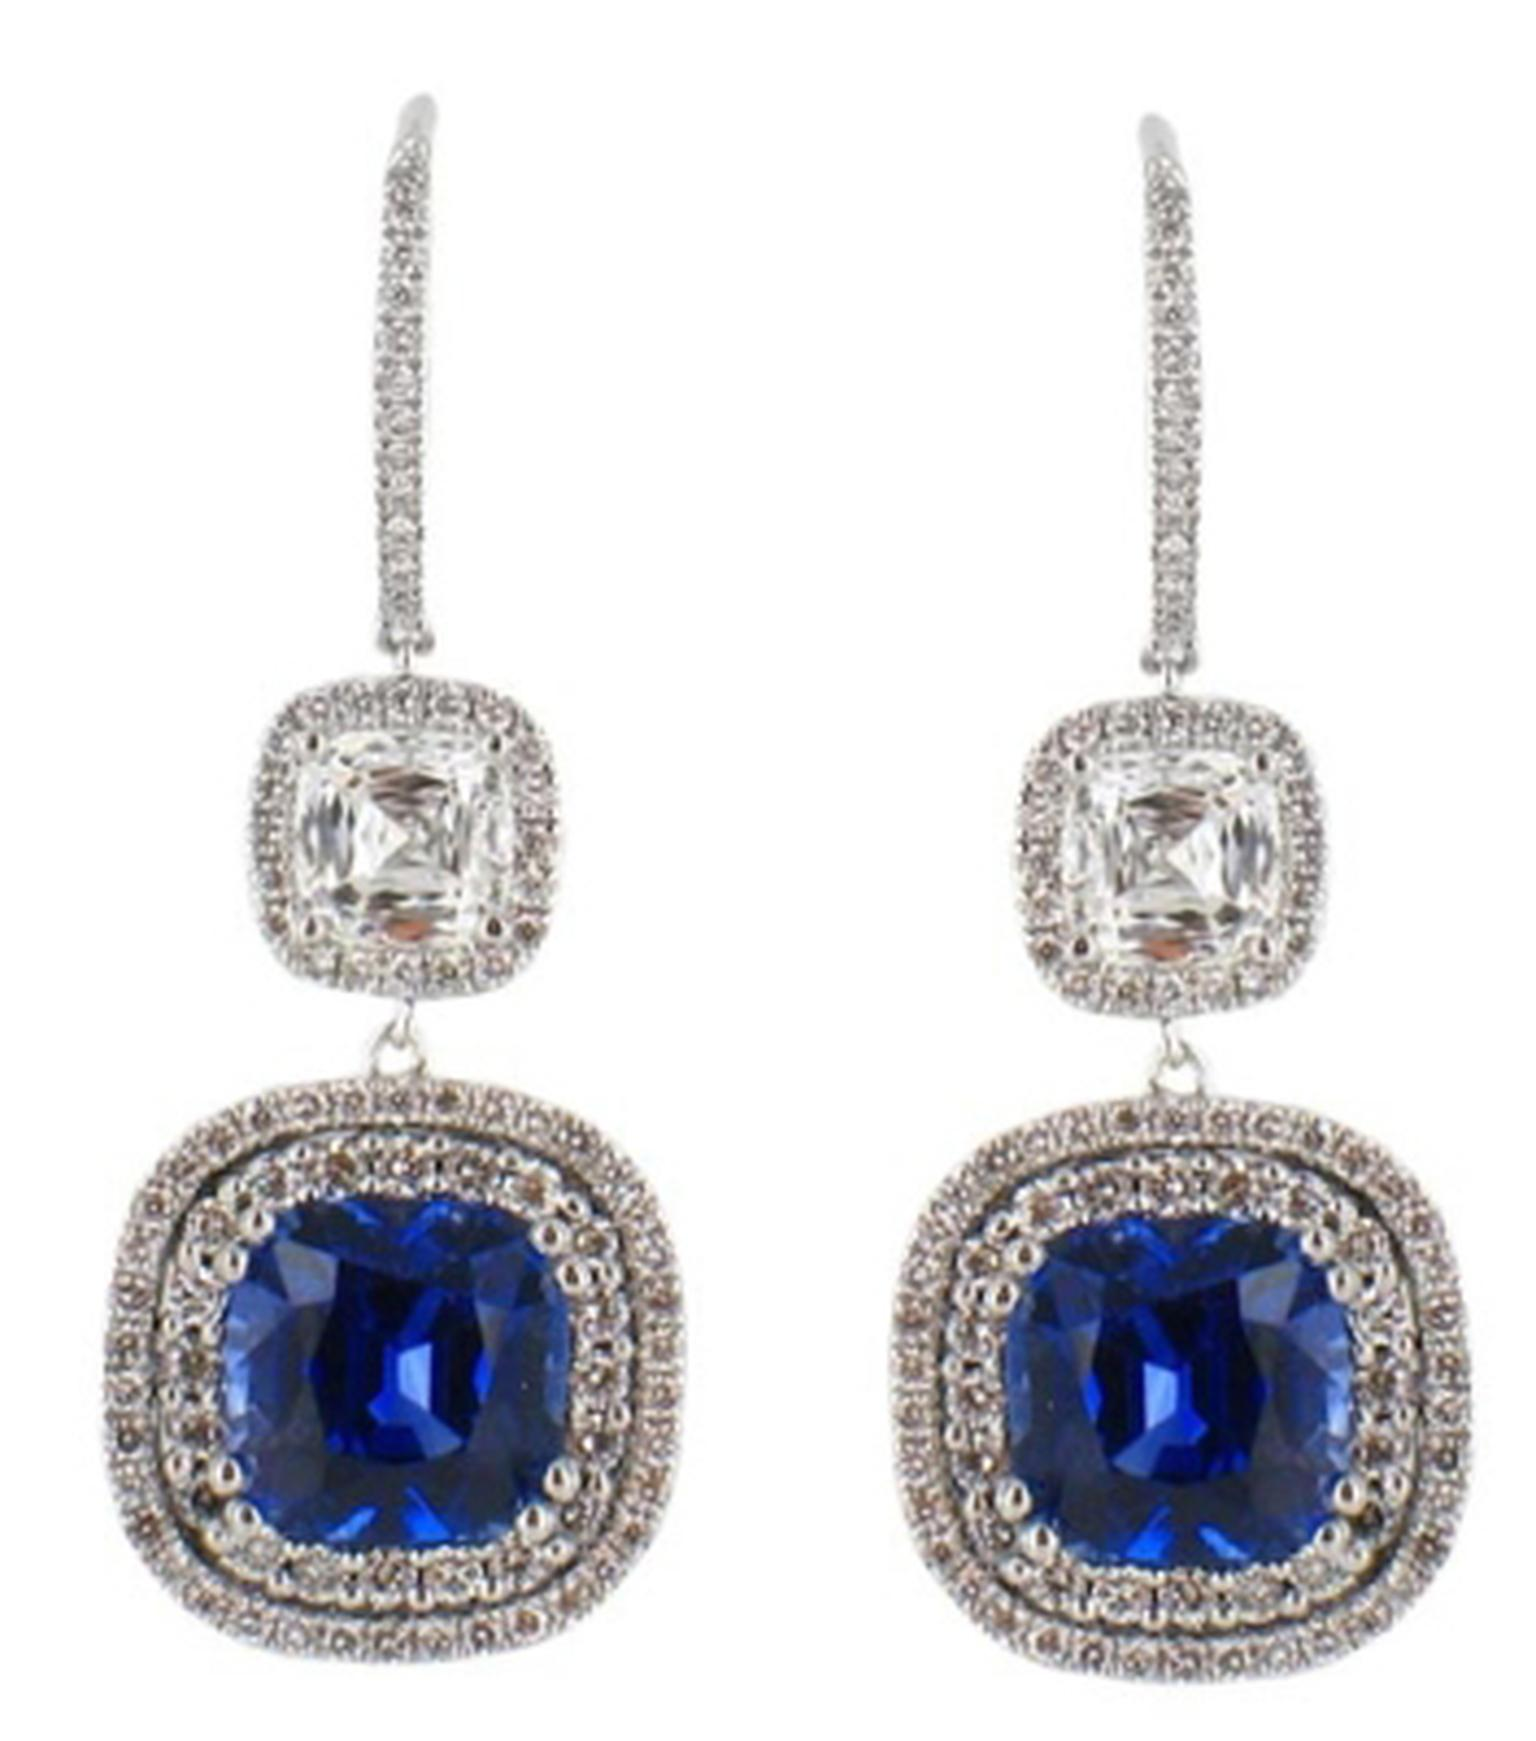 The necklace and earrings worn by BAFTAs 2014 presenter Gillian Anderson were set with 30ct sapphires and 18ct diamonds